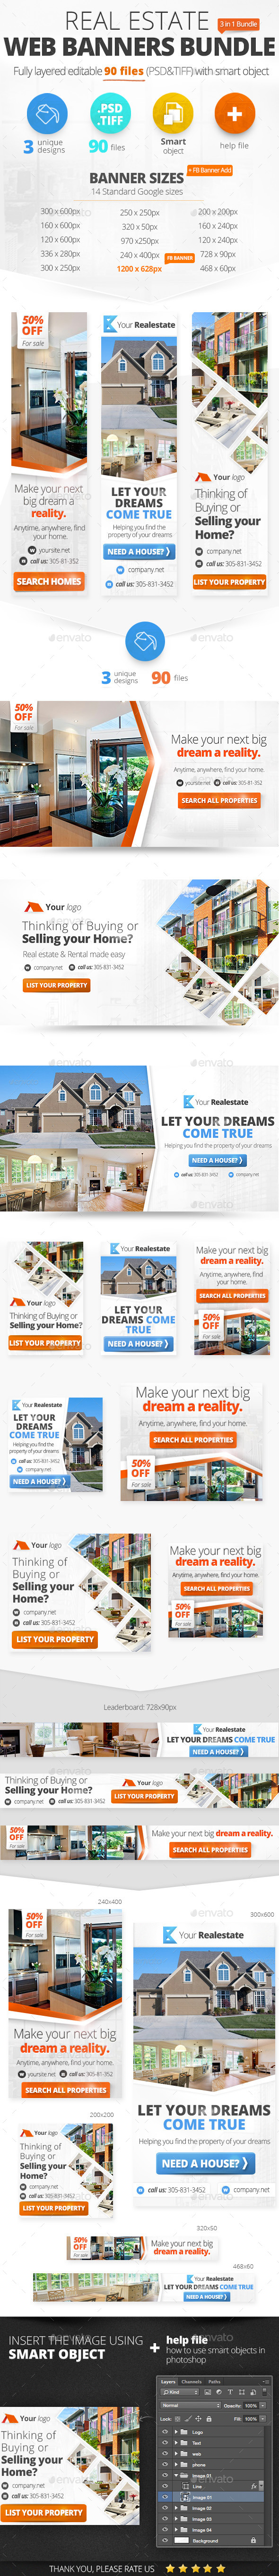 Real Estate Web Banners Bundle - Banners & Ads Web Elements